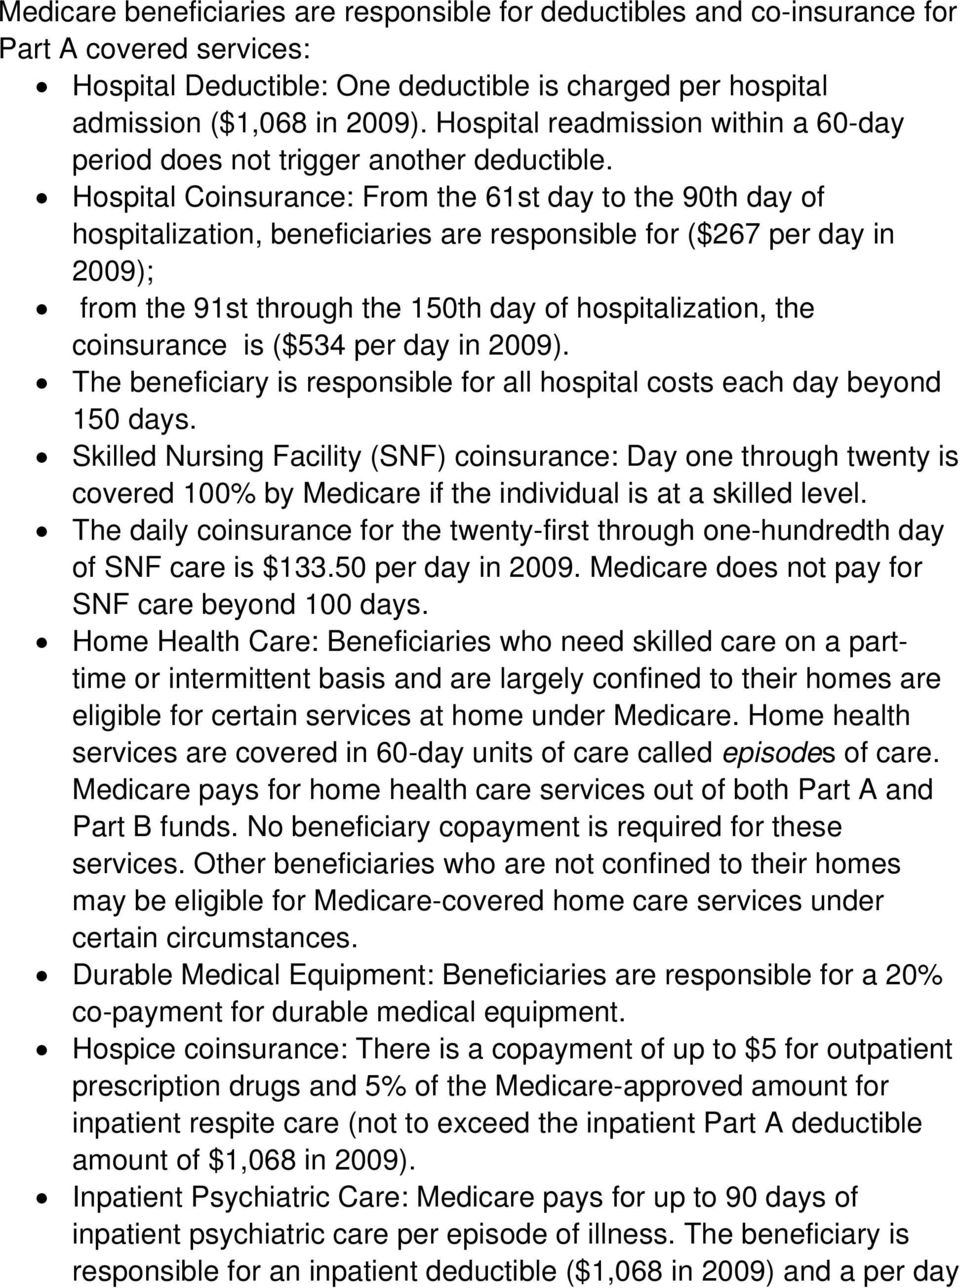 Hospital Coinsurance: From the 61st day to the 90th day of hospitalization, beneficiaries are responsible for ($267 per day in 2009); from the 91st through the 150th day of hospitalization, the